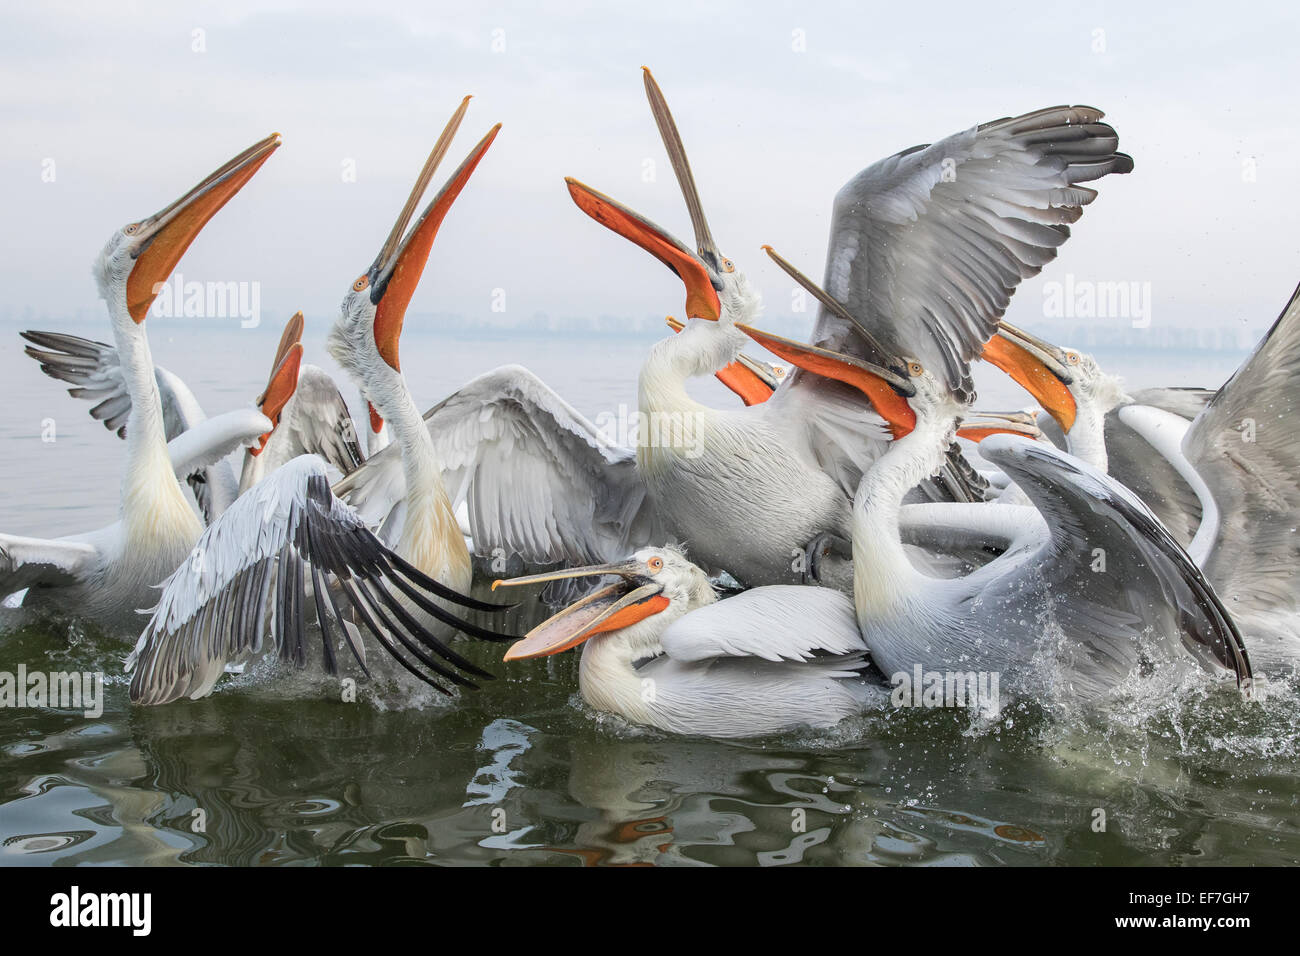 Dalmatian Pelicans (Pelecanus crispus) leap out of the water to catch fish on Lake Kerkini in Northern Greece Stock Photo